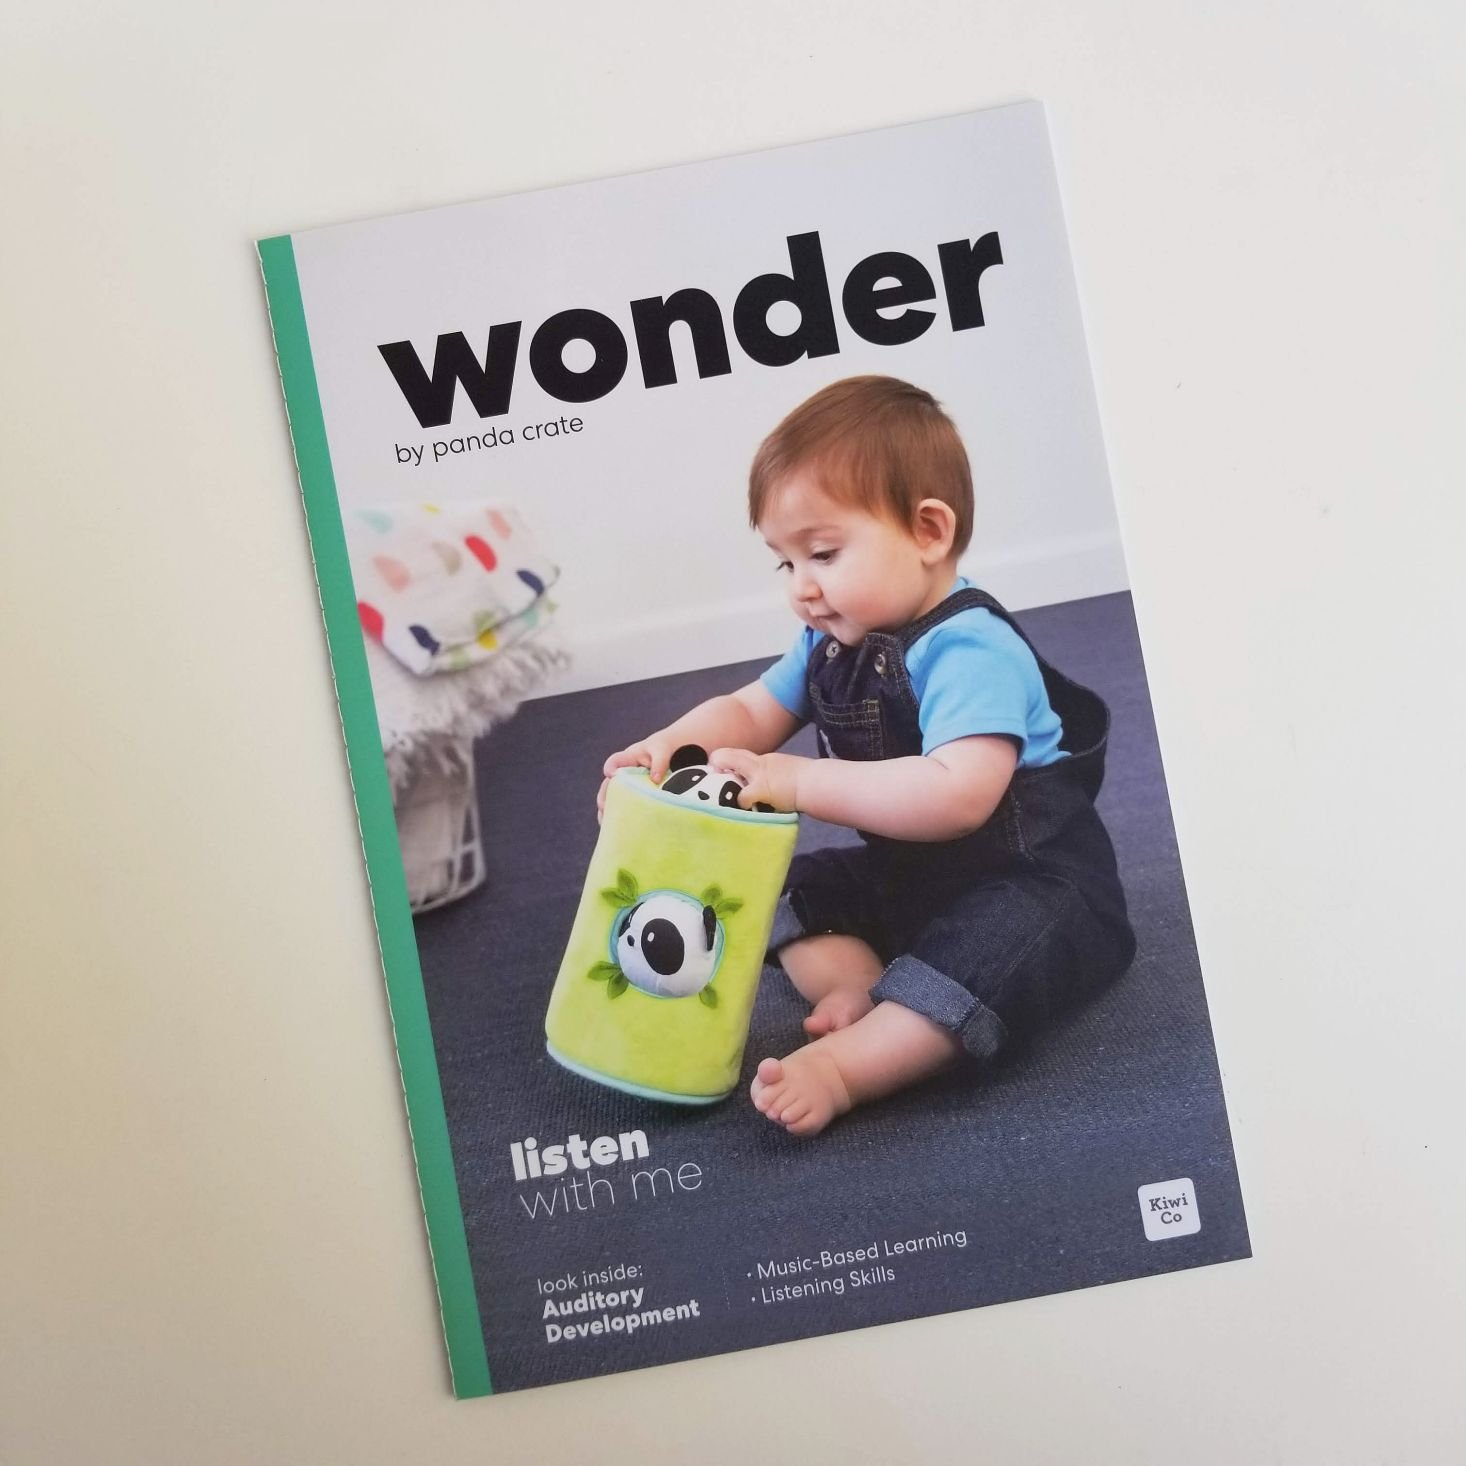 Panda Crate Listen With Me wonder magazine cover